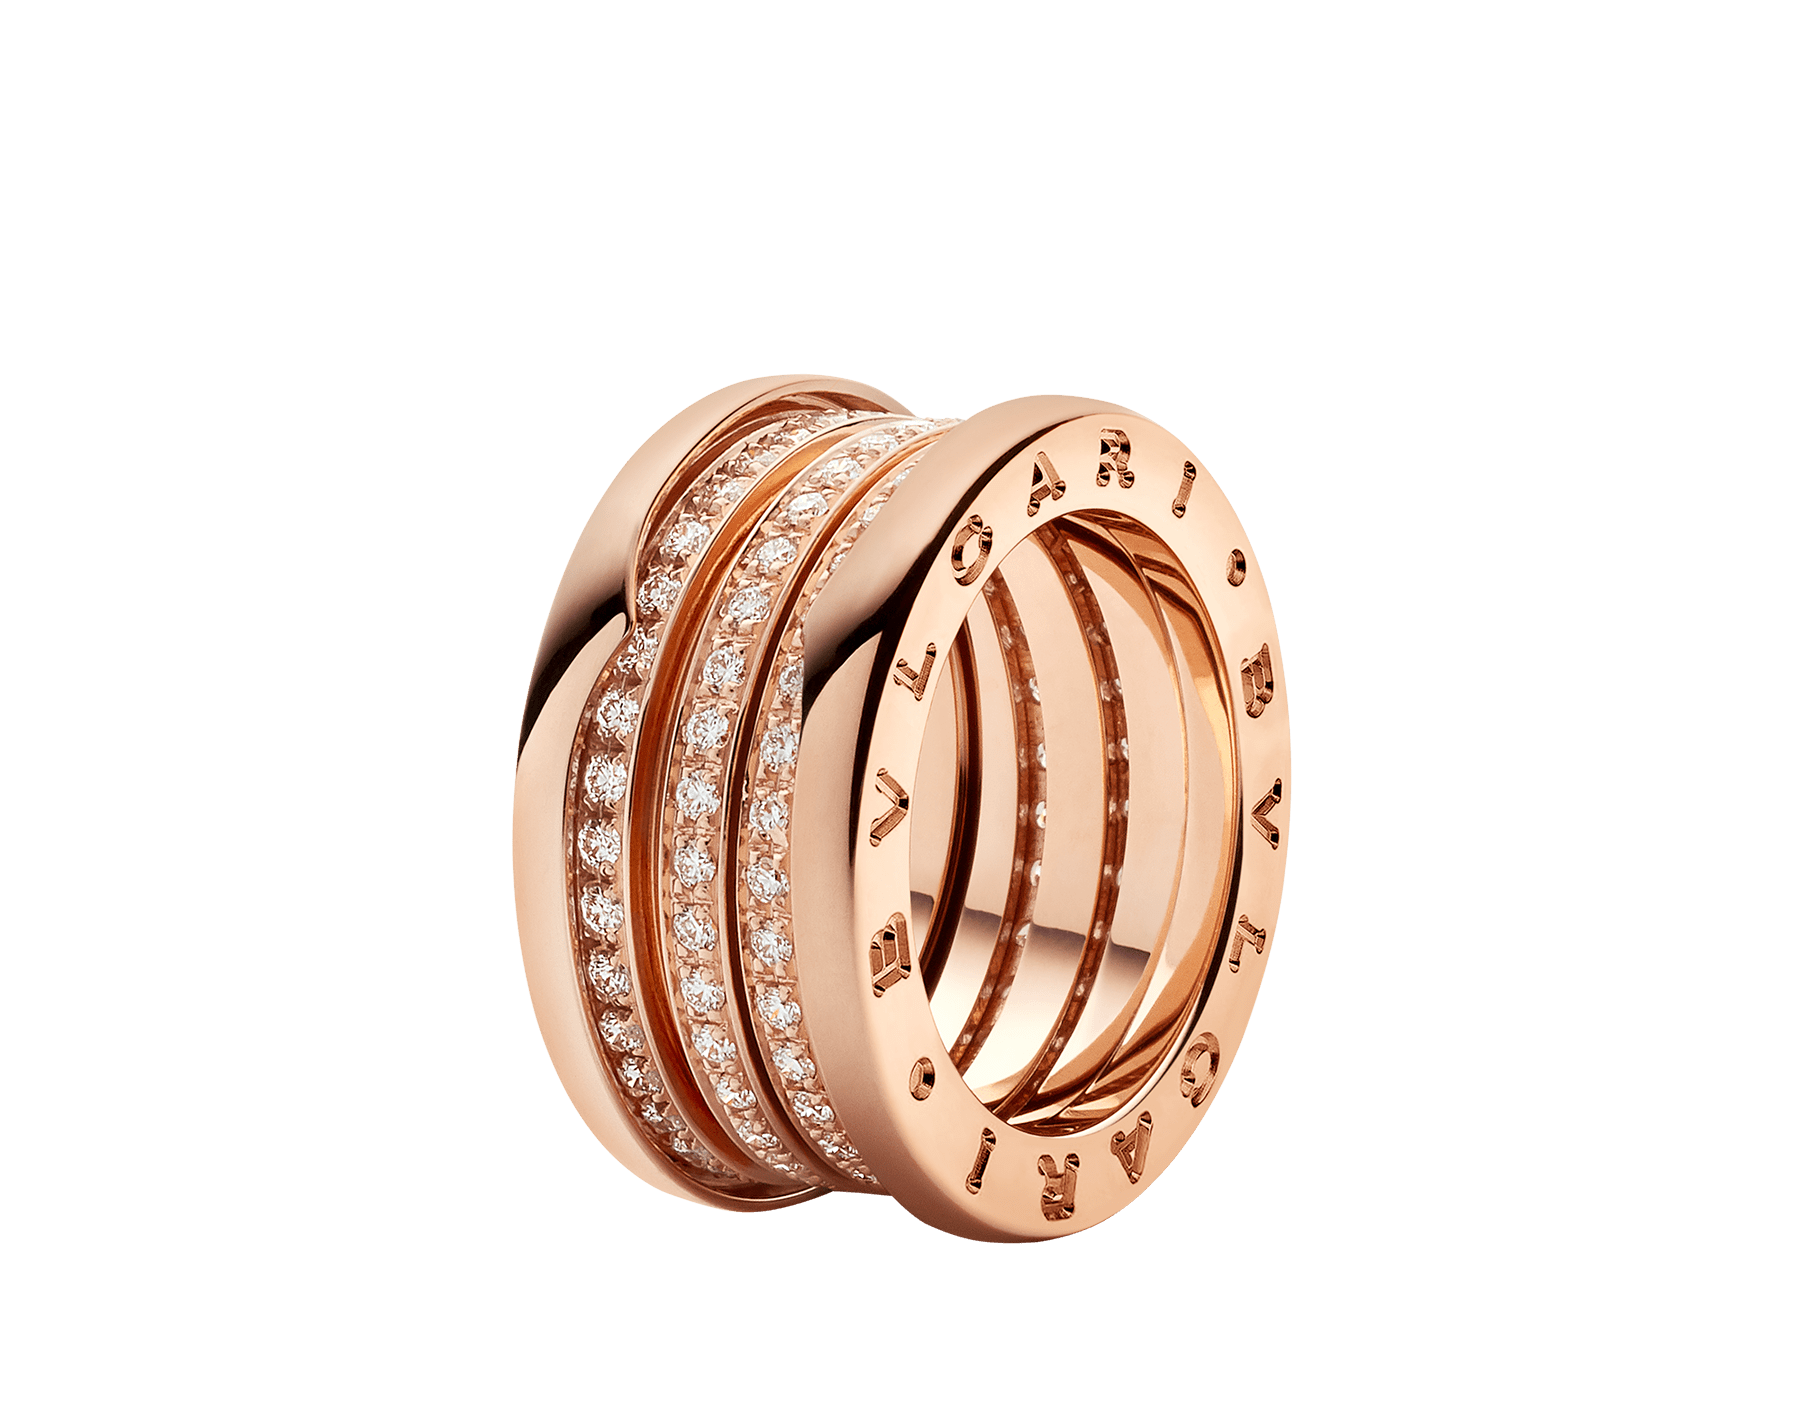 B.zero1 four-band ring in 18kt rose gold, set with pavé diamonds on the spiral. B-zero1-4-bands-AN857022 image 1